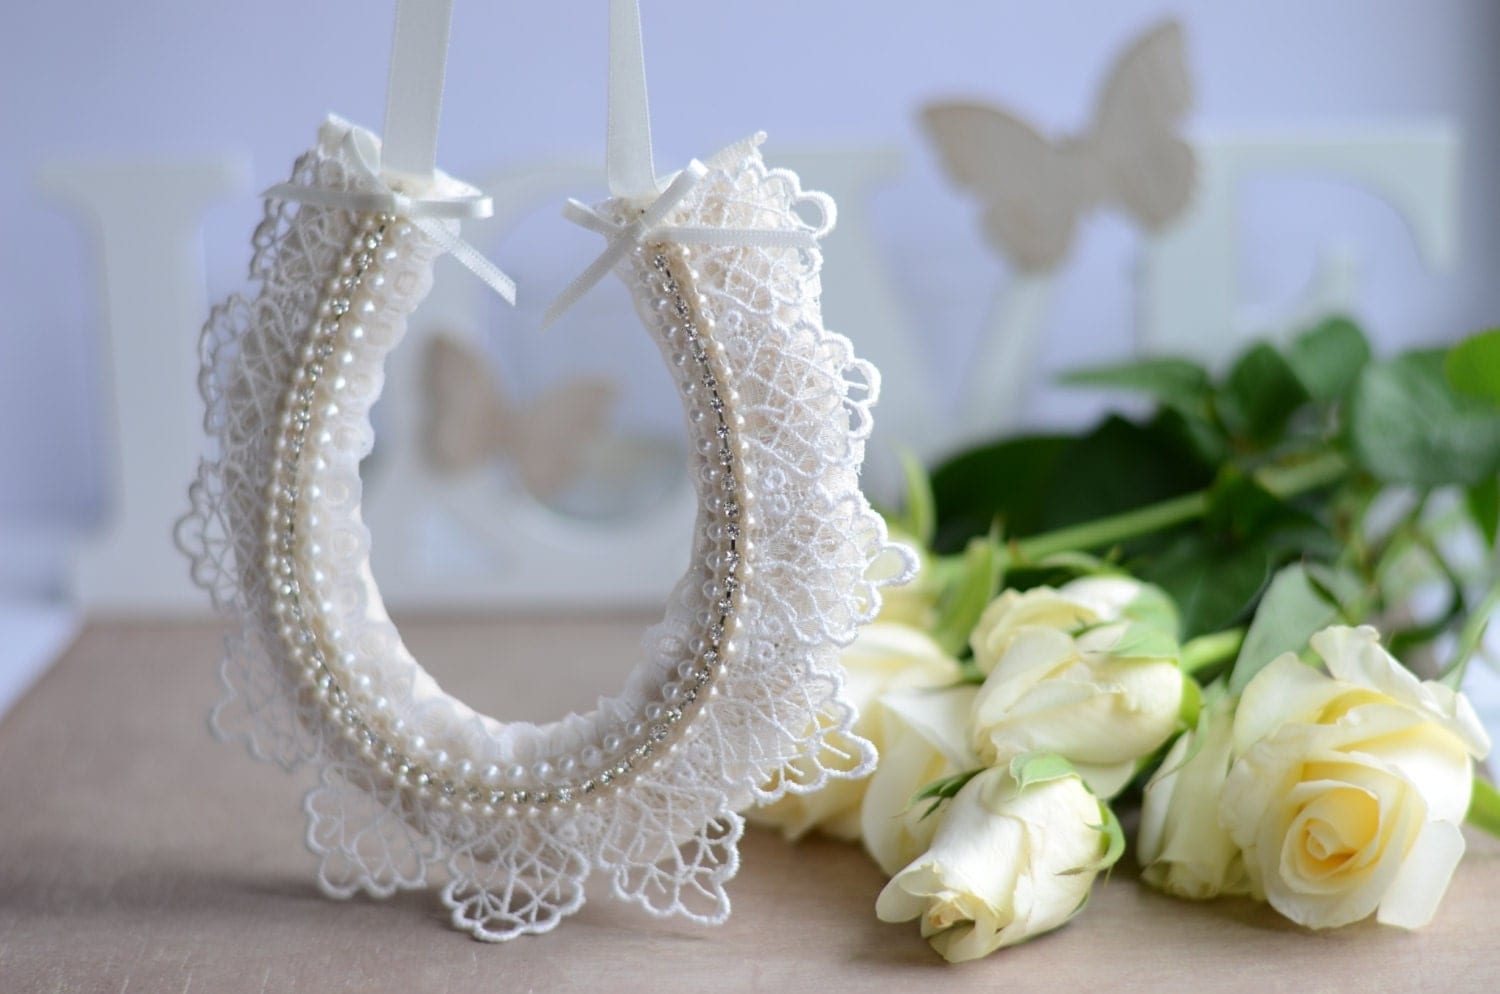 Retro Wedding Gifts: Wedding Gift For Couples Vintage Style Wedding Horseshoe